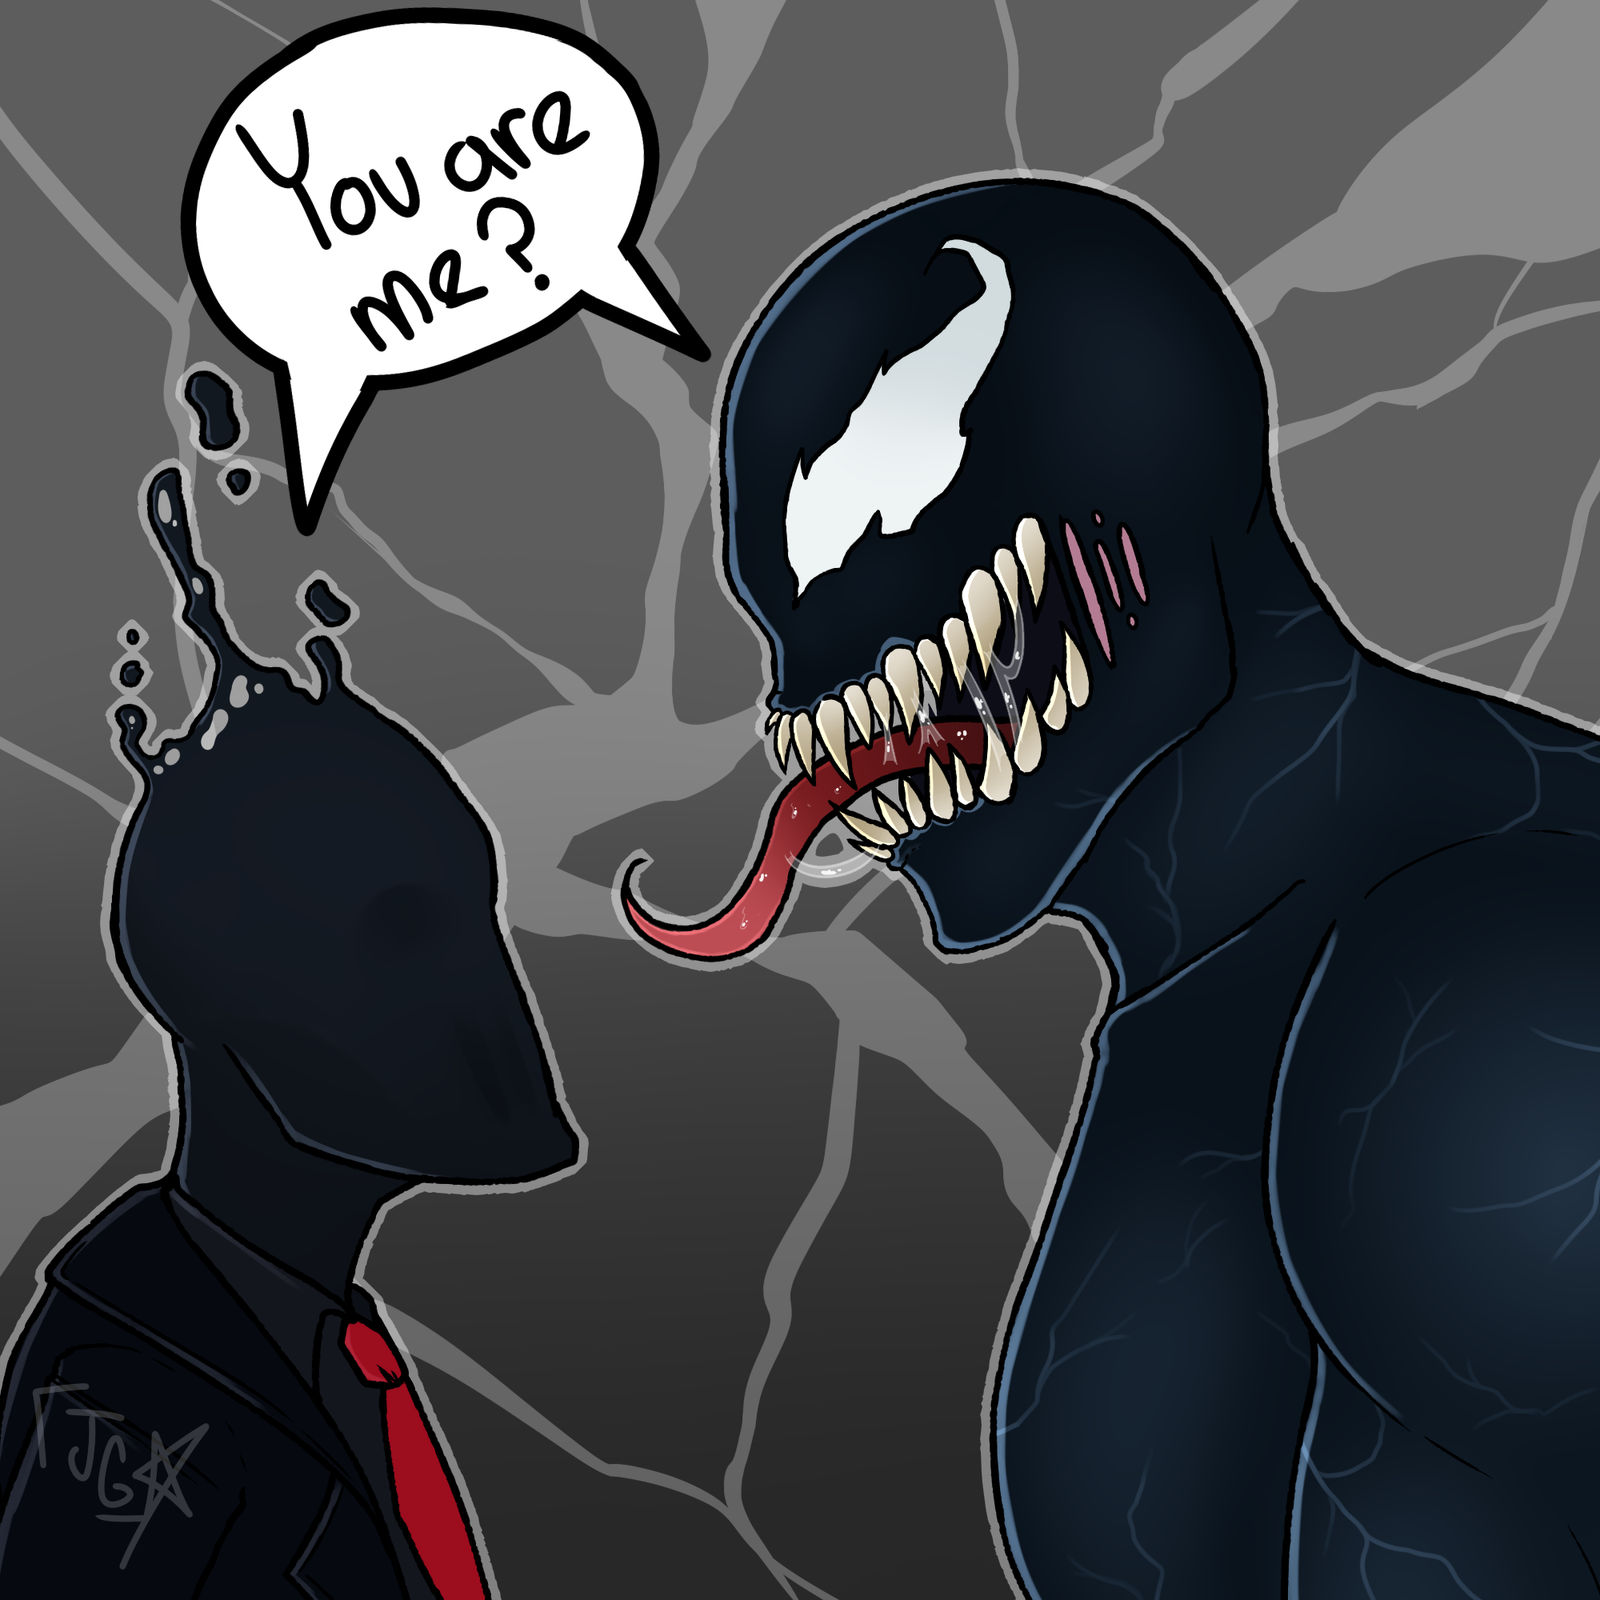 Fortnite Venom And Chaos Agent By Jgemex On Deviantart Tons of awesome venom fortnite wallpapers to download for free. fortnite venom and chaos agent by